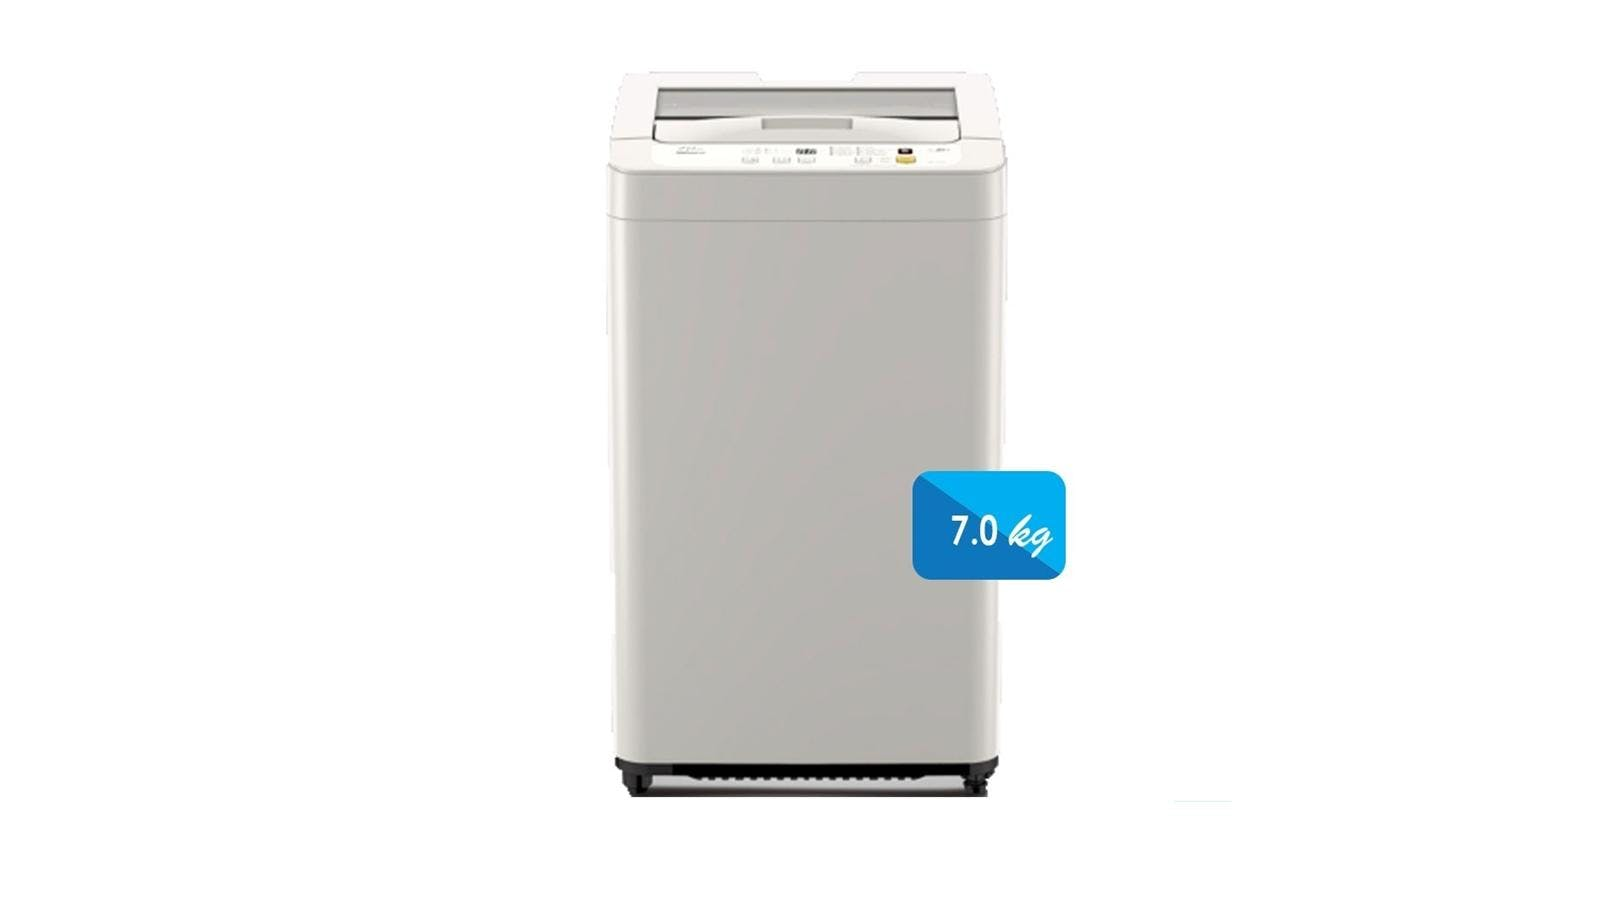 Washing Machines Dryers Harvey Norman Malaysia Electrolux Front Loading Washer Ewf14113 Panasonic Na F70s7 7kg Top Load